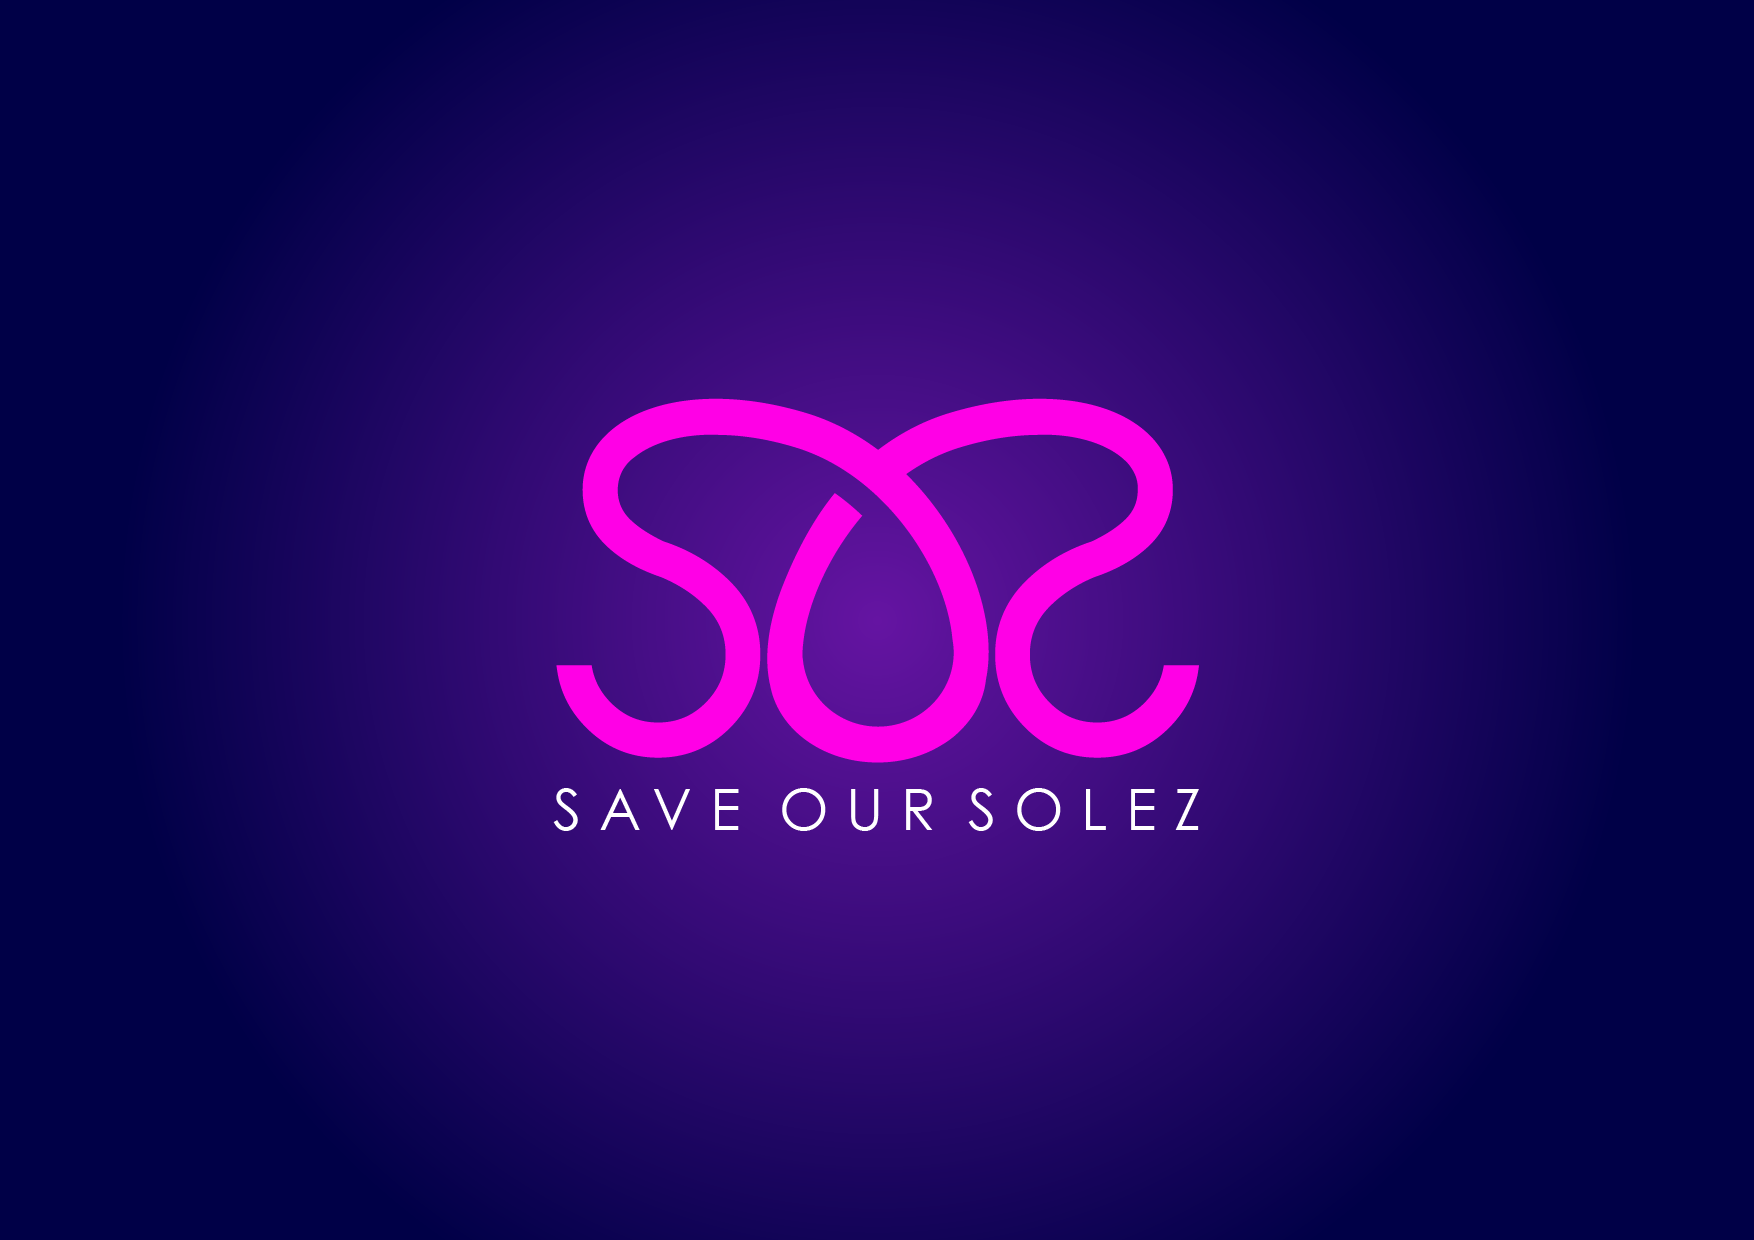 Logo Design by bulb - Entry No. 34 in the Logo Design Contest Captivating Logo Design for Save Our Solez.